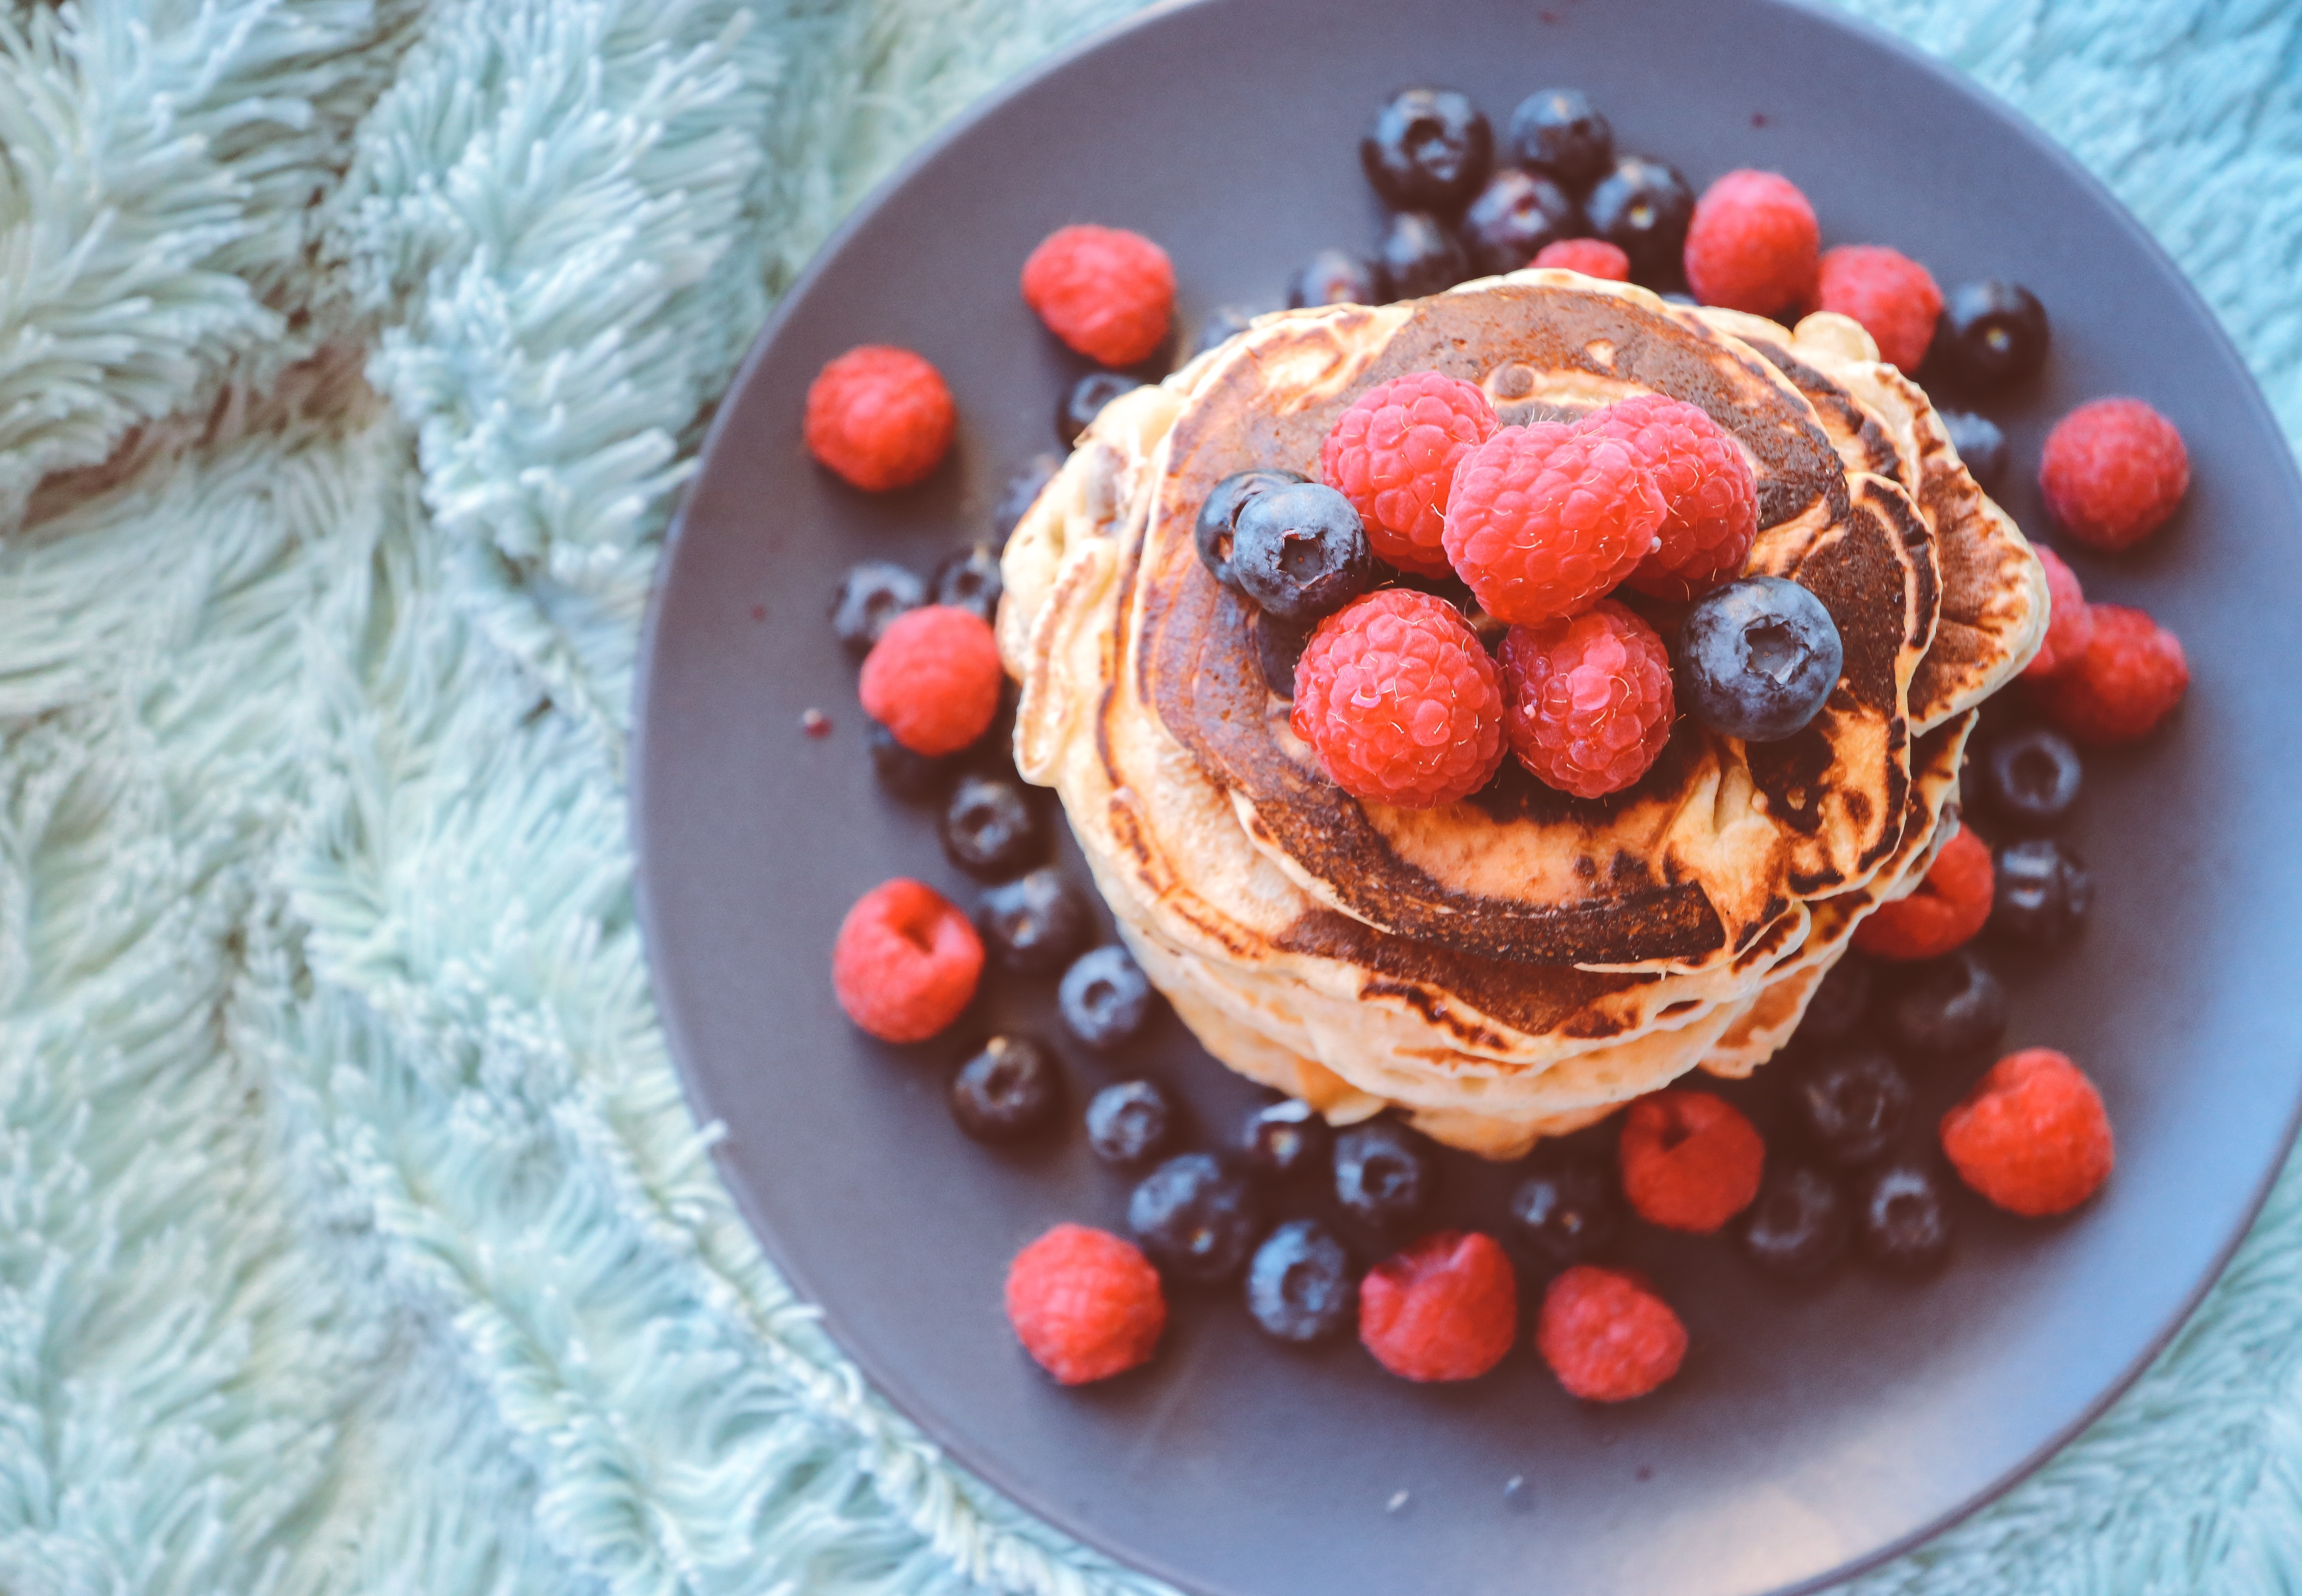 Blueberries and raspberries on a stack of pancakes